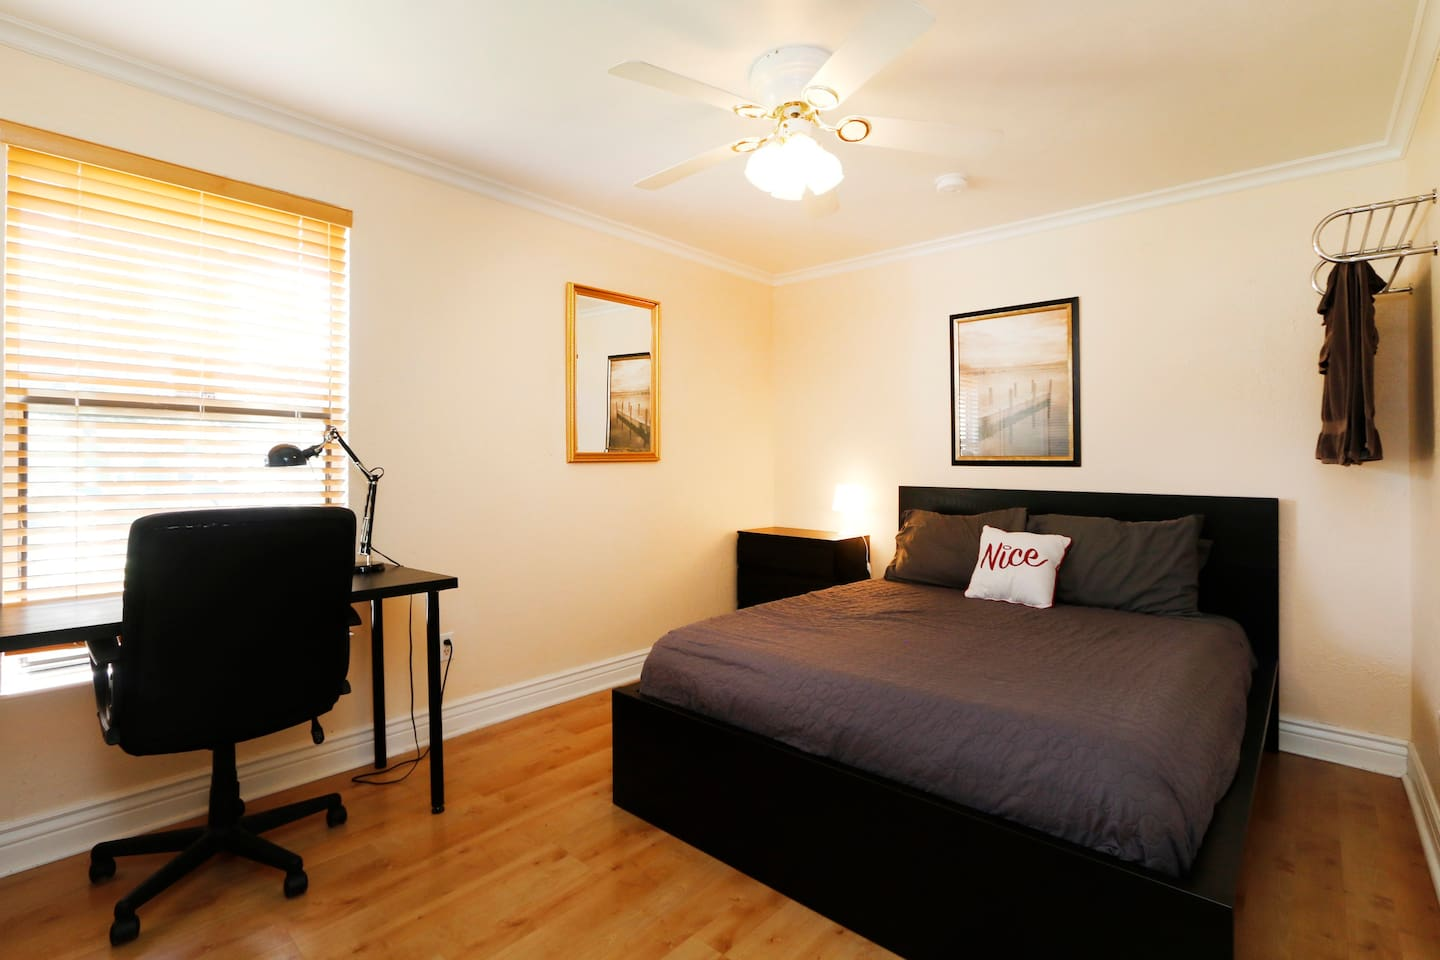 When you step into Bedroom #2 you will see a bright bedroom